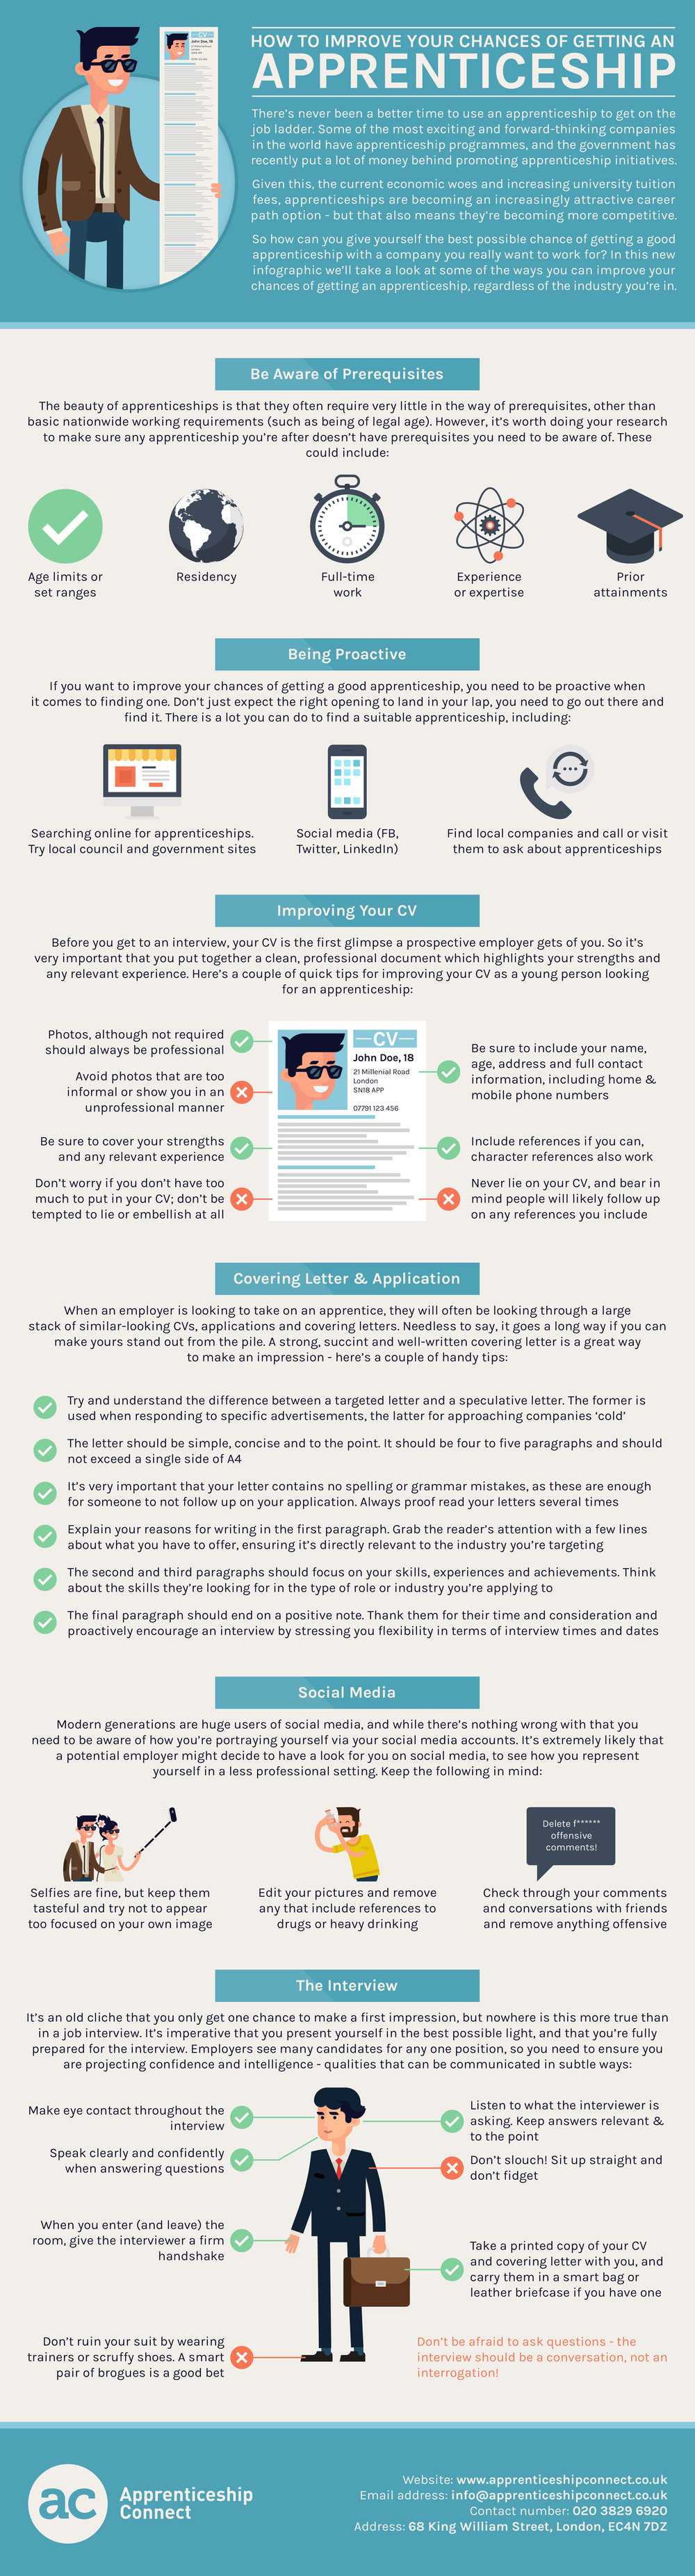 How to Improve Your Chances of Getting an Apprenticeship infographic